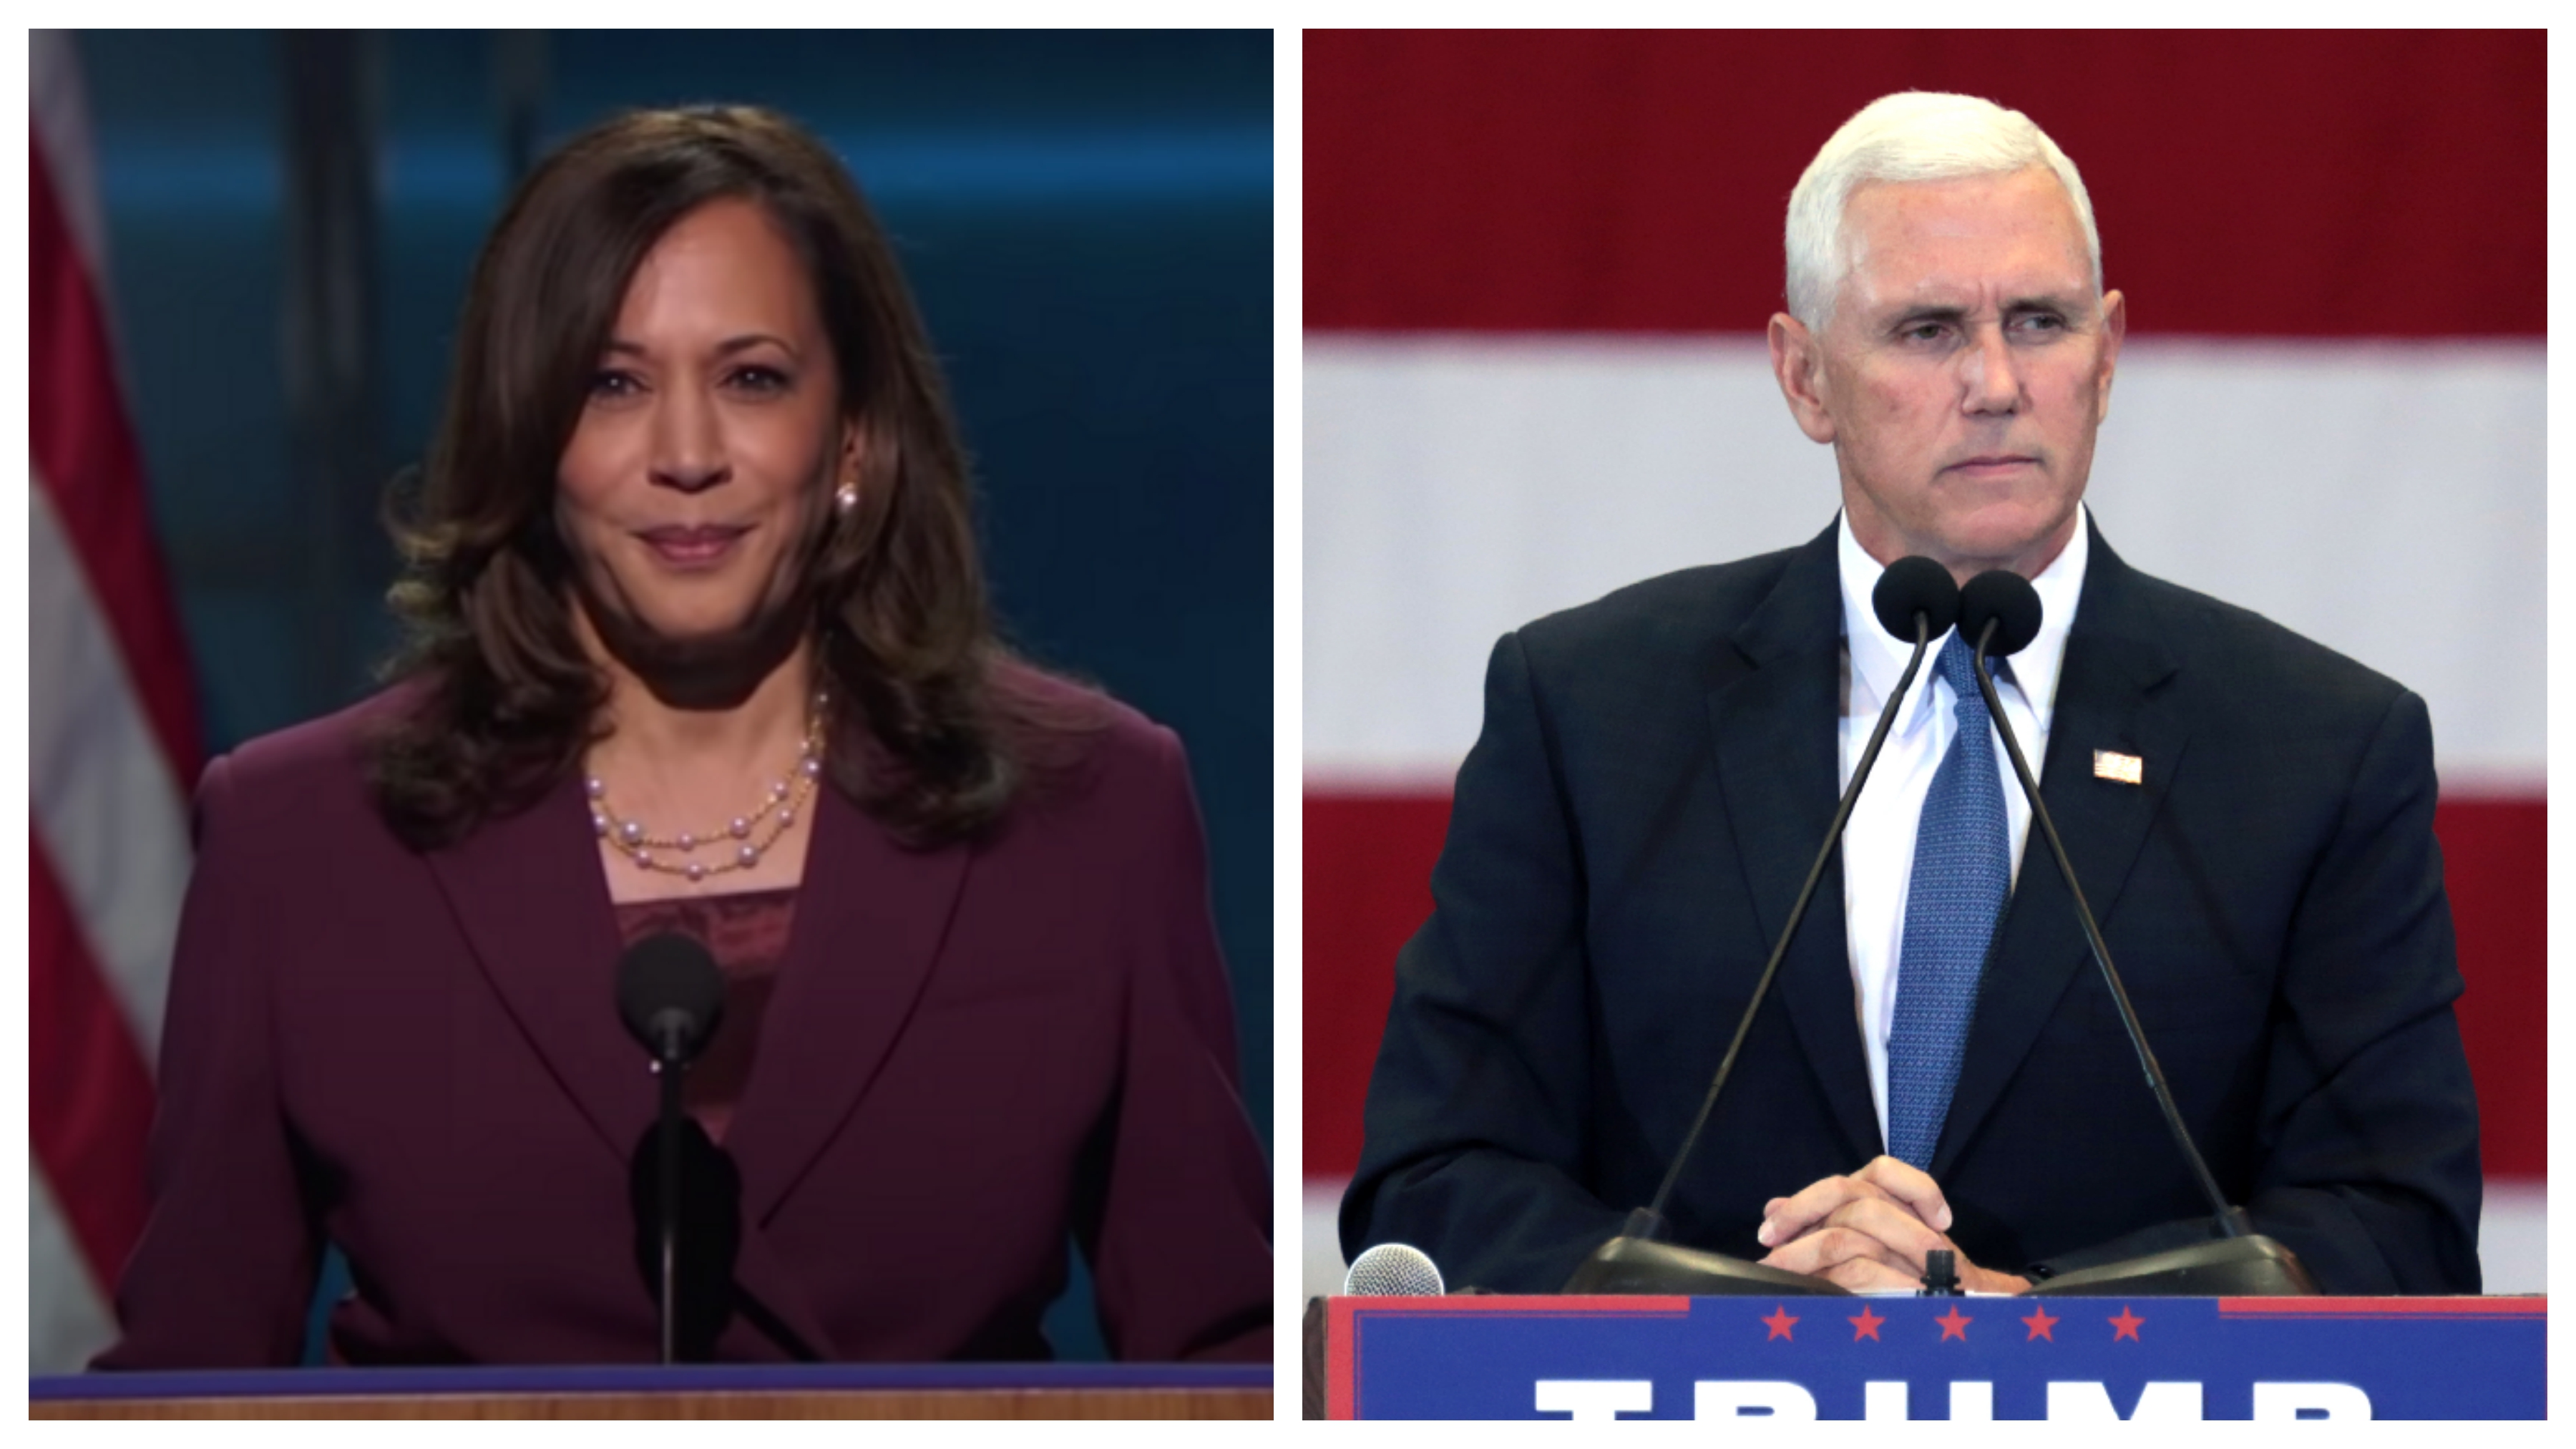 the Pence-Harris debate will be divided into nine segments of about 10 minutes each.